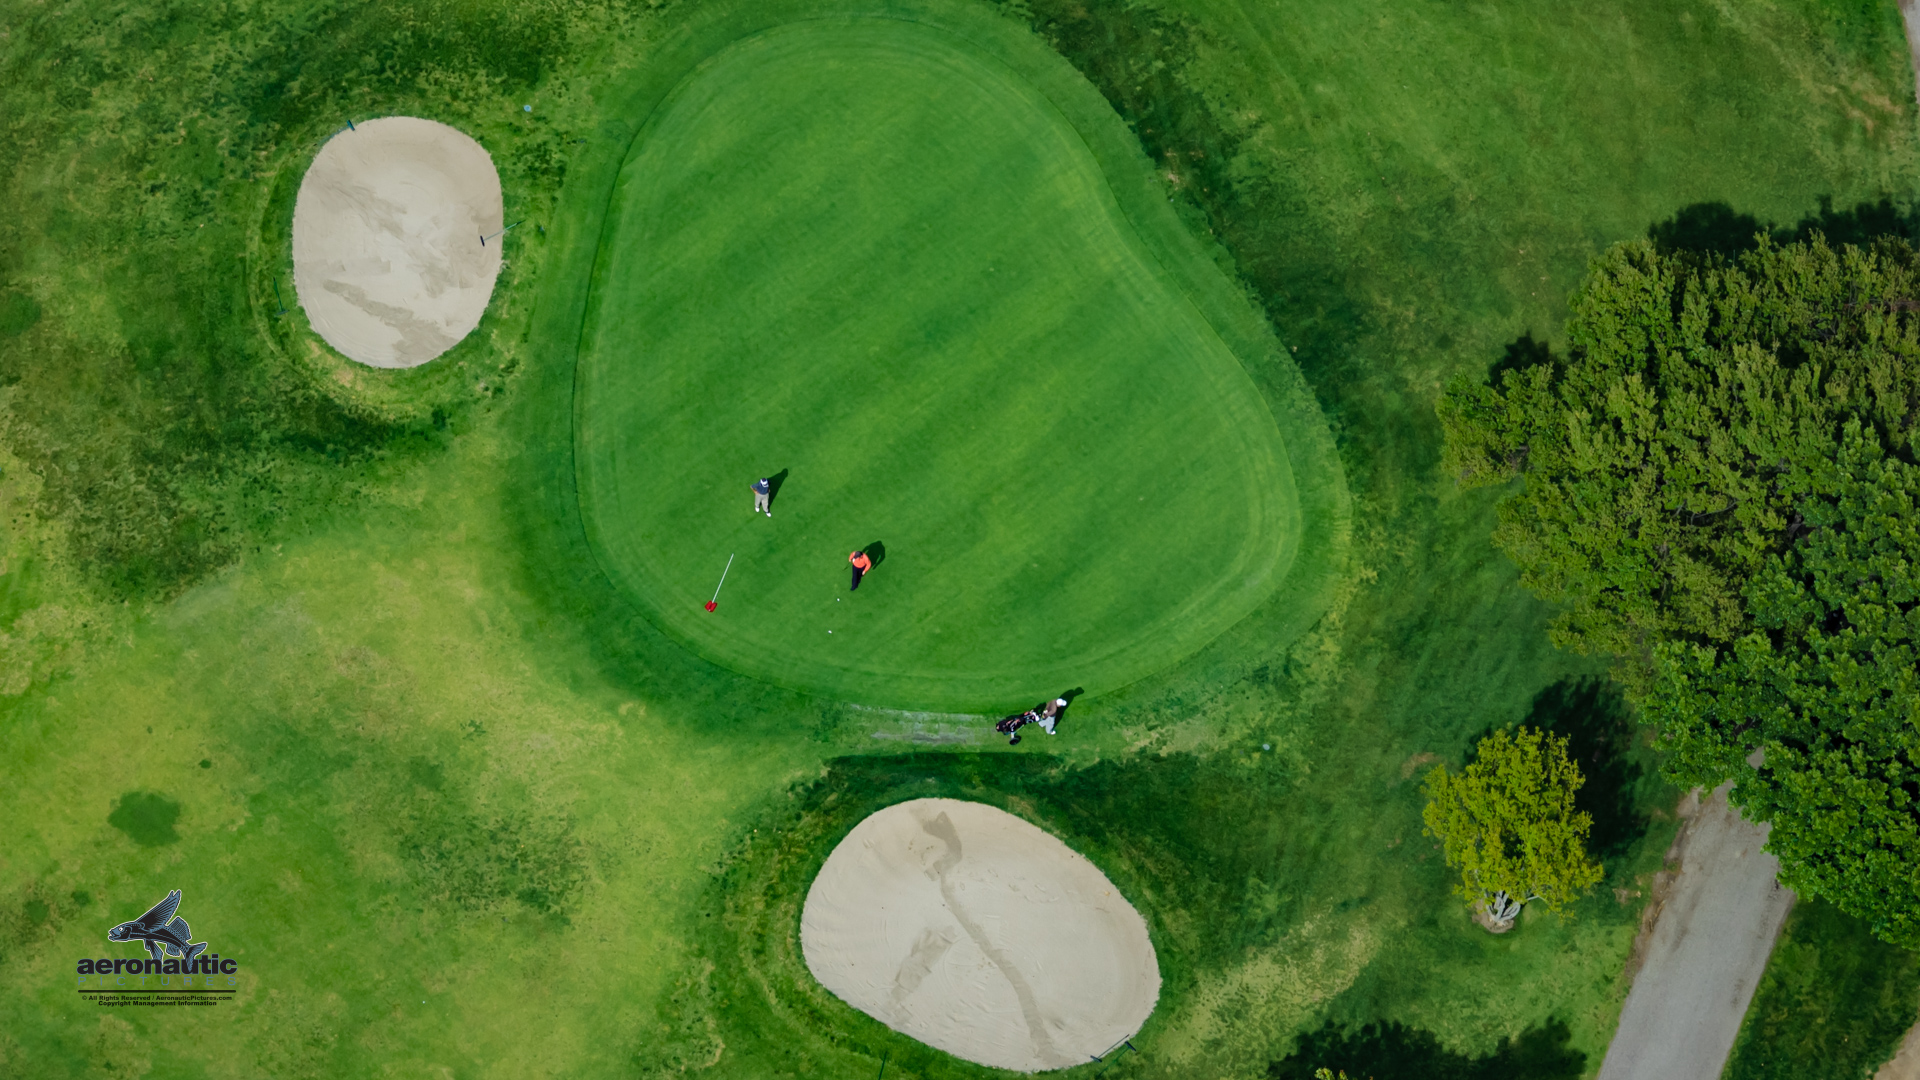 Golfers On Green Putting Golfing Aerial View